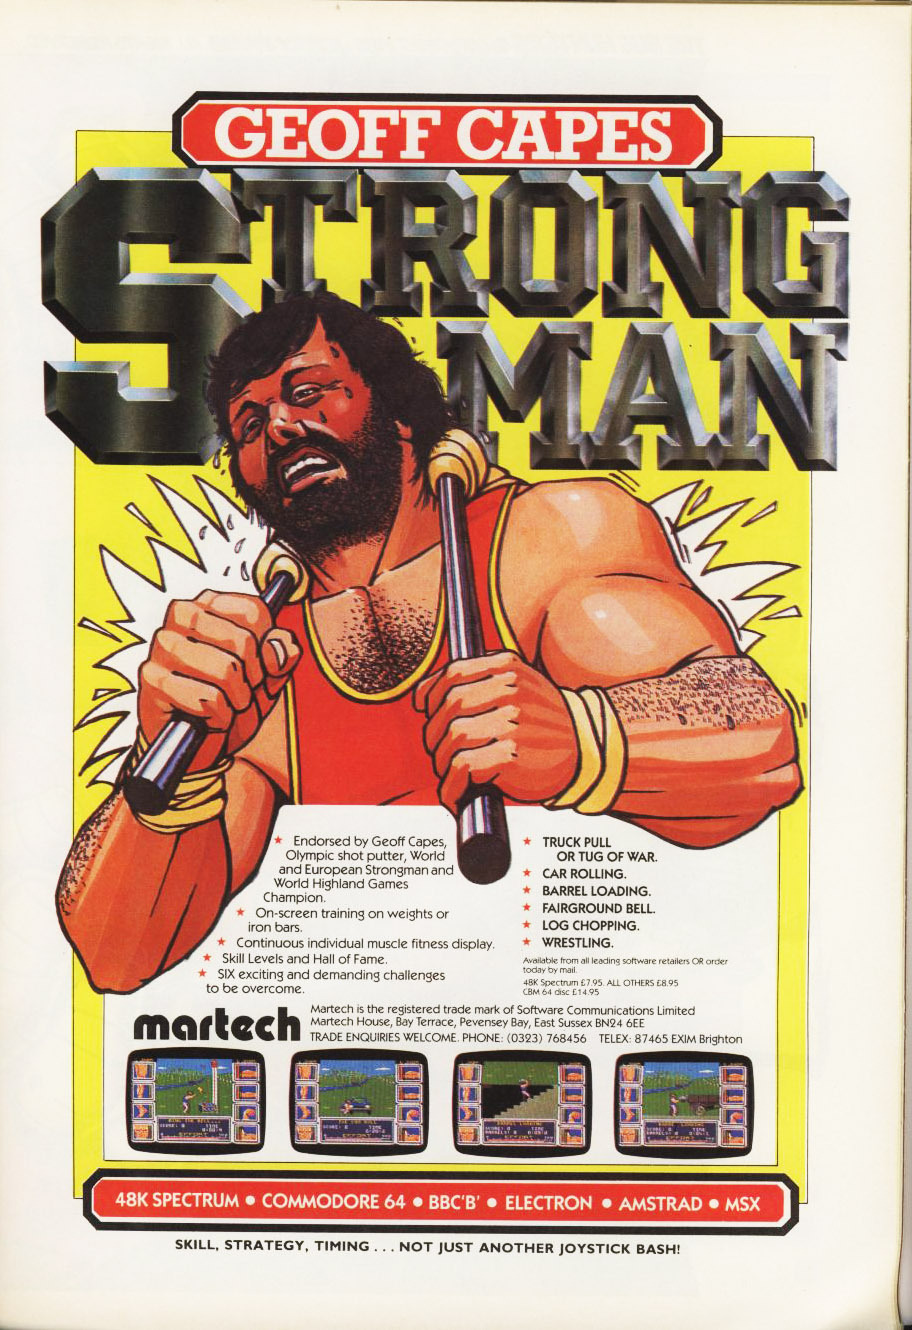 Hey! It's Geoff Capes Strong Man! This guy apparently won worlds strongest man numerous times, and also played Darth Vader for a bit in Empire Strikes Back!  Follow oldgamemags on Tumblr for m